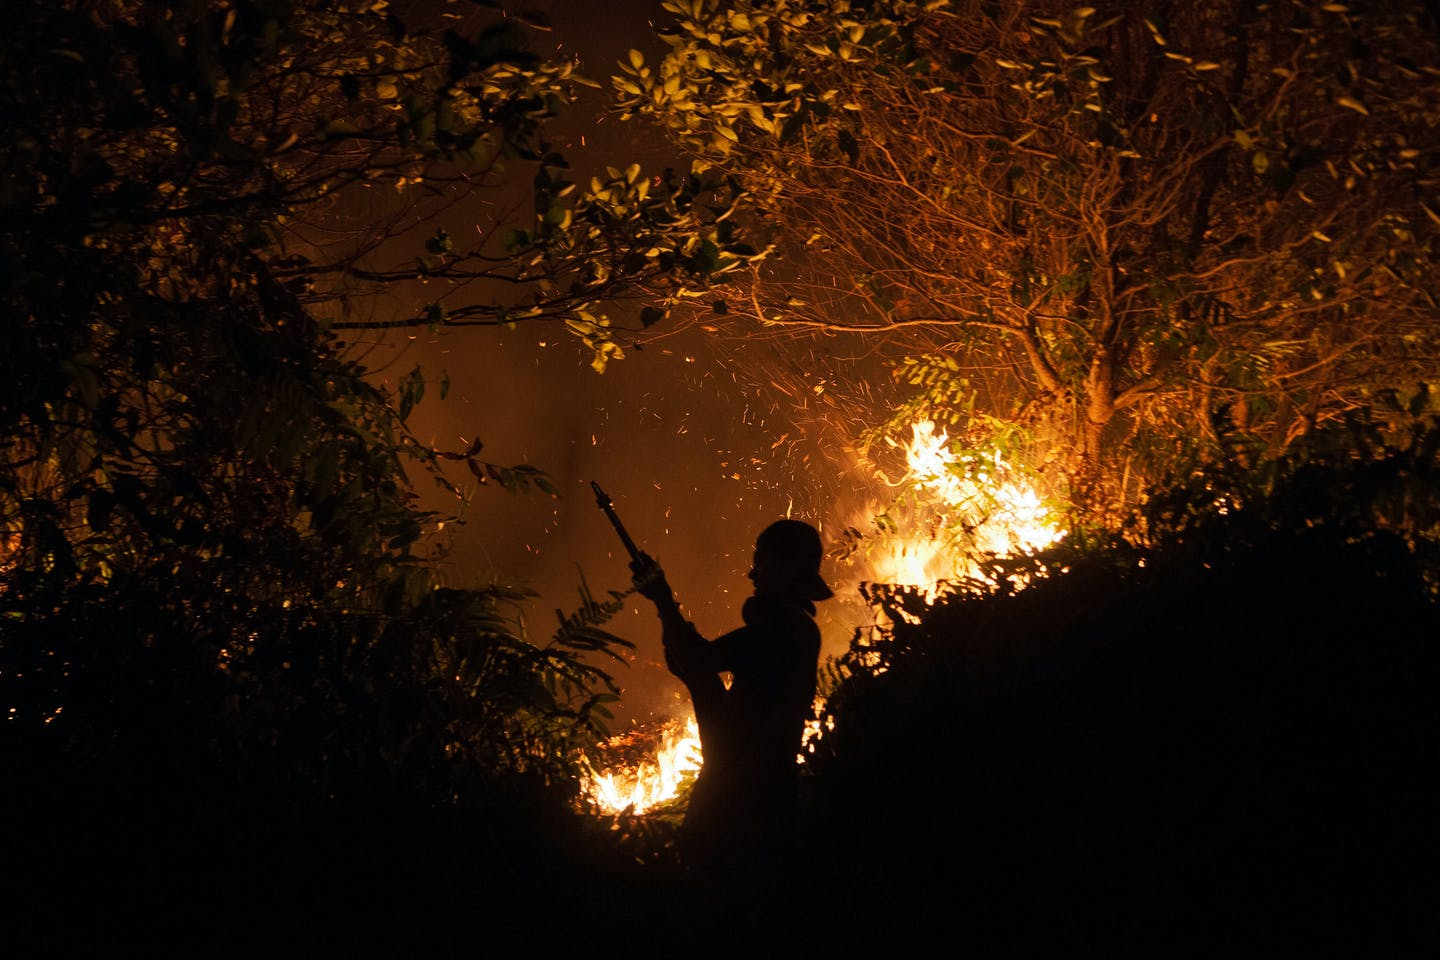 kalimantan night firefighters